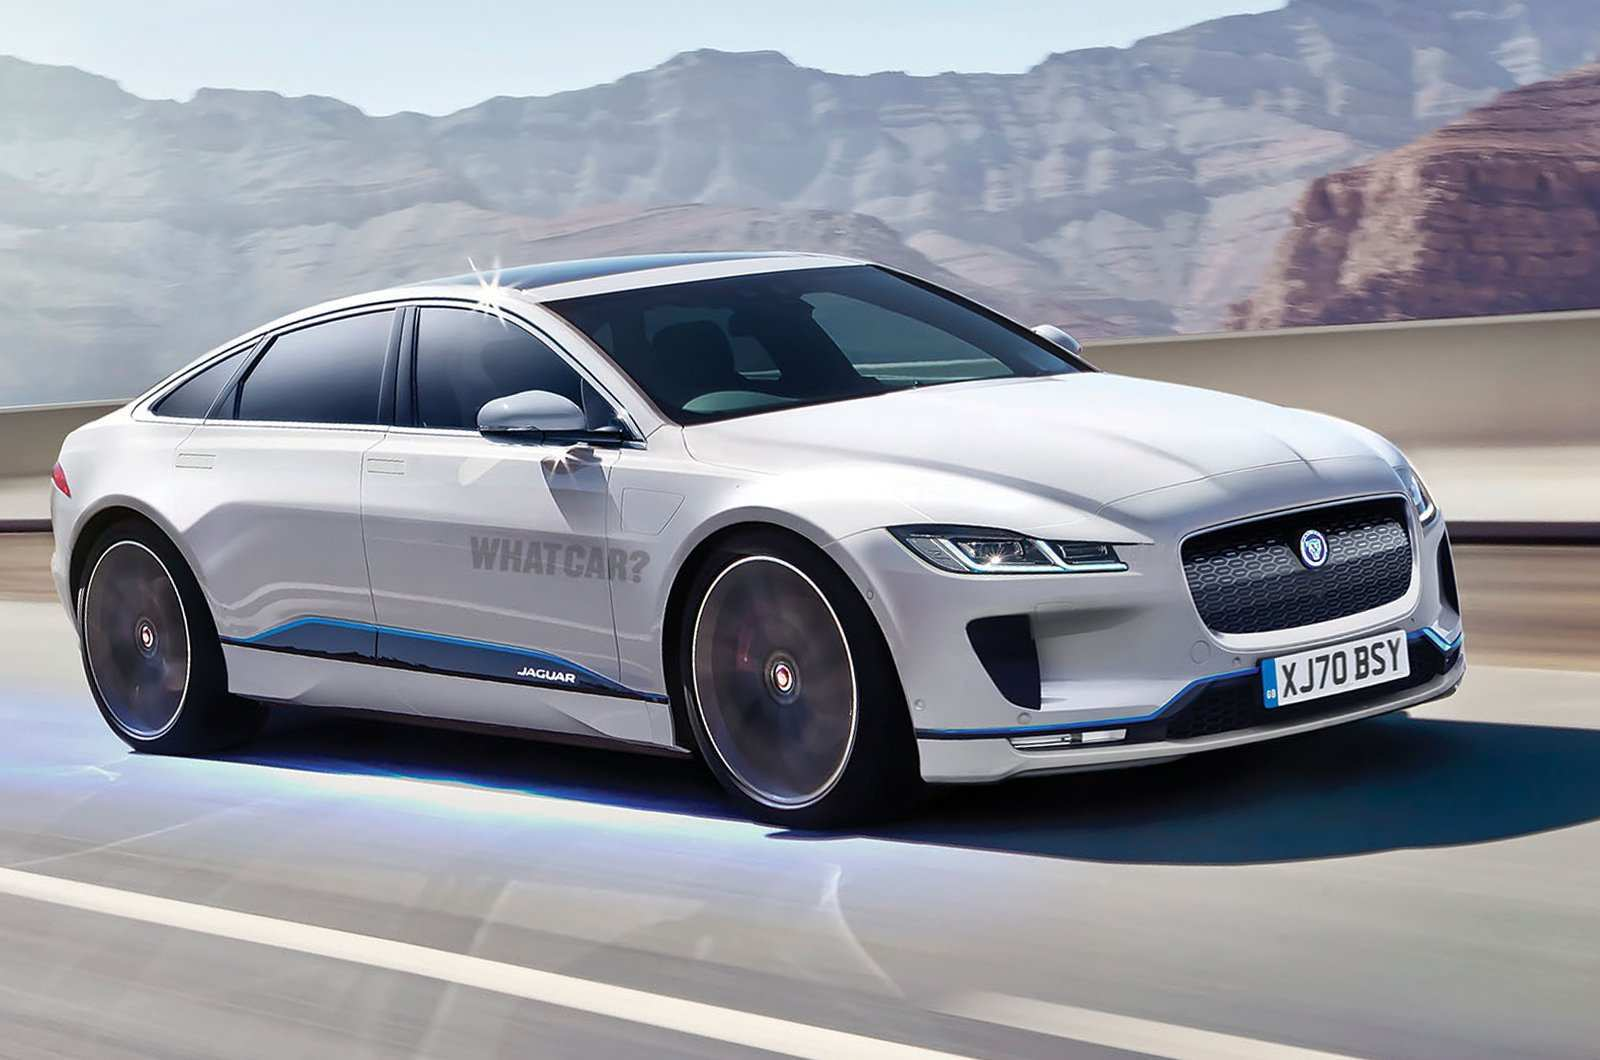 51 The Best Jaguar Car 2019 Concept And Review